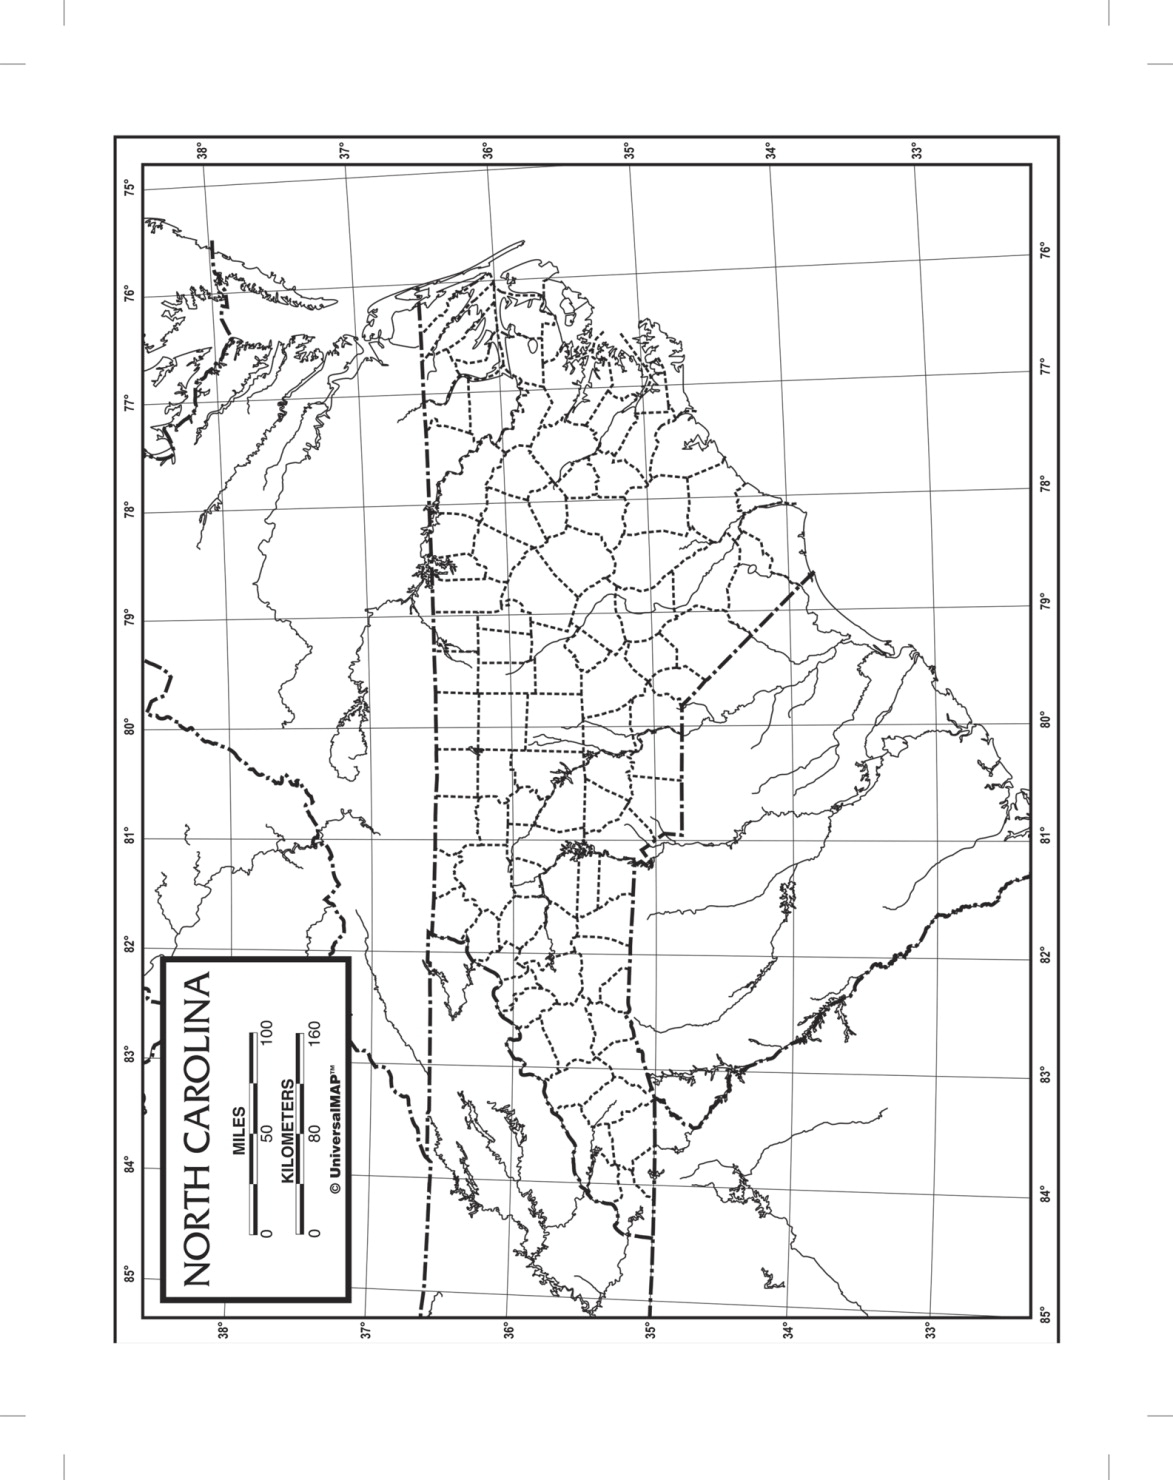 Kappa Map North Carolina Outline Map; Laminated; 8-1/2 X 11 In; Pack Of 50 - 1573906 - Toys Literature For Social Studies 1573906